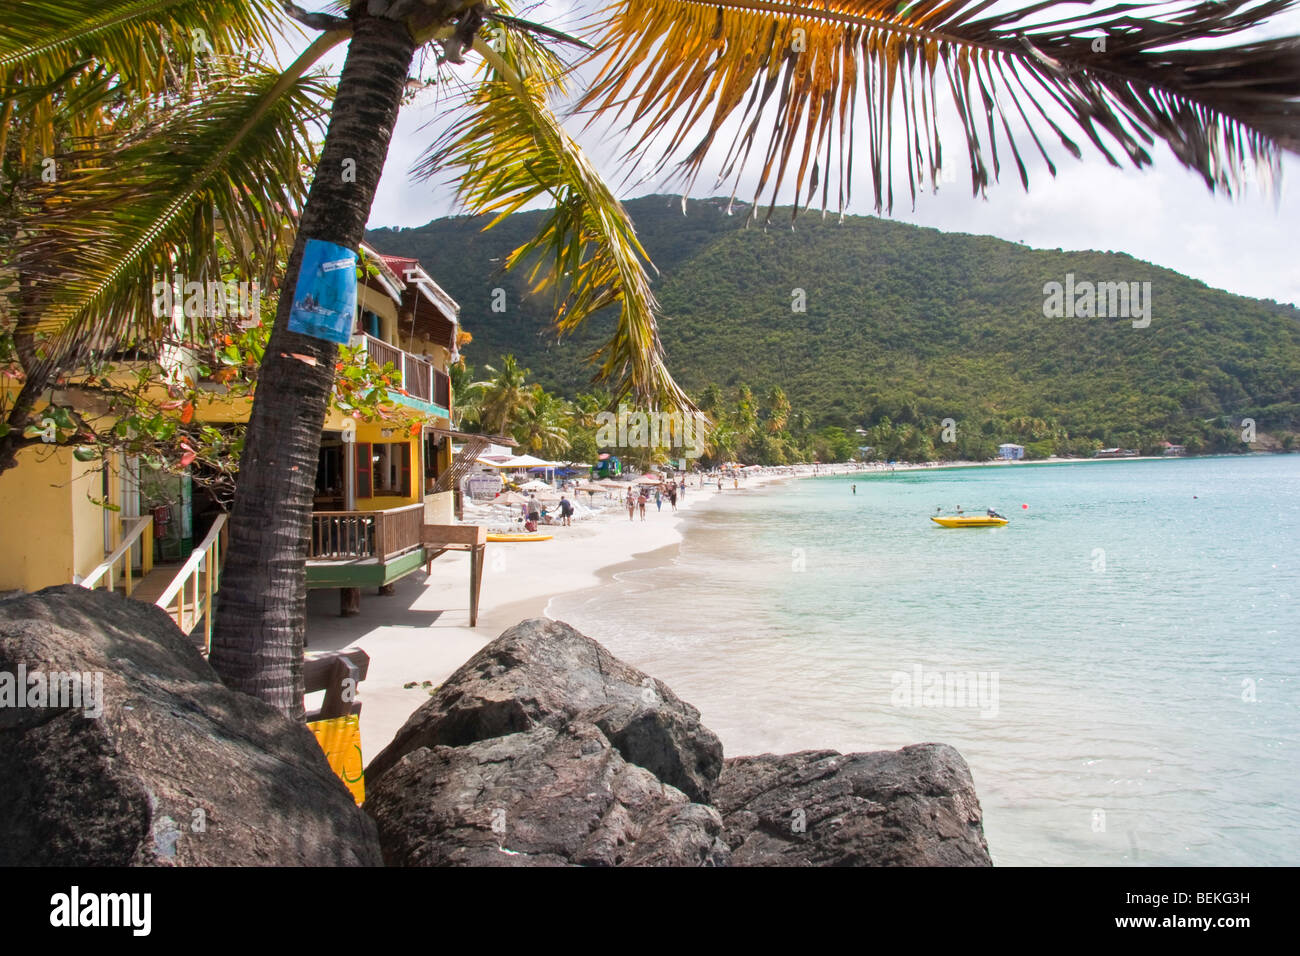 The Beach at Cane Garden Bay viewed from Quito Rymer's pier - Stock Image